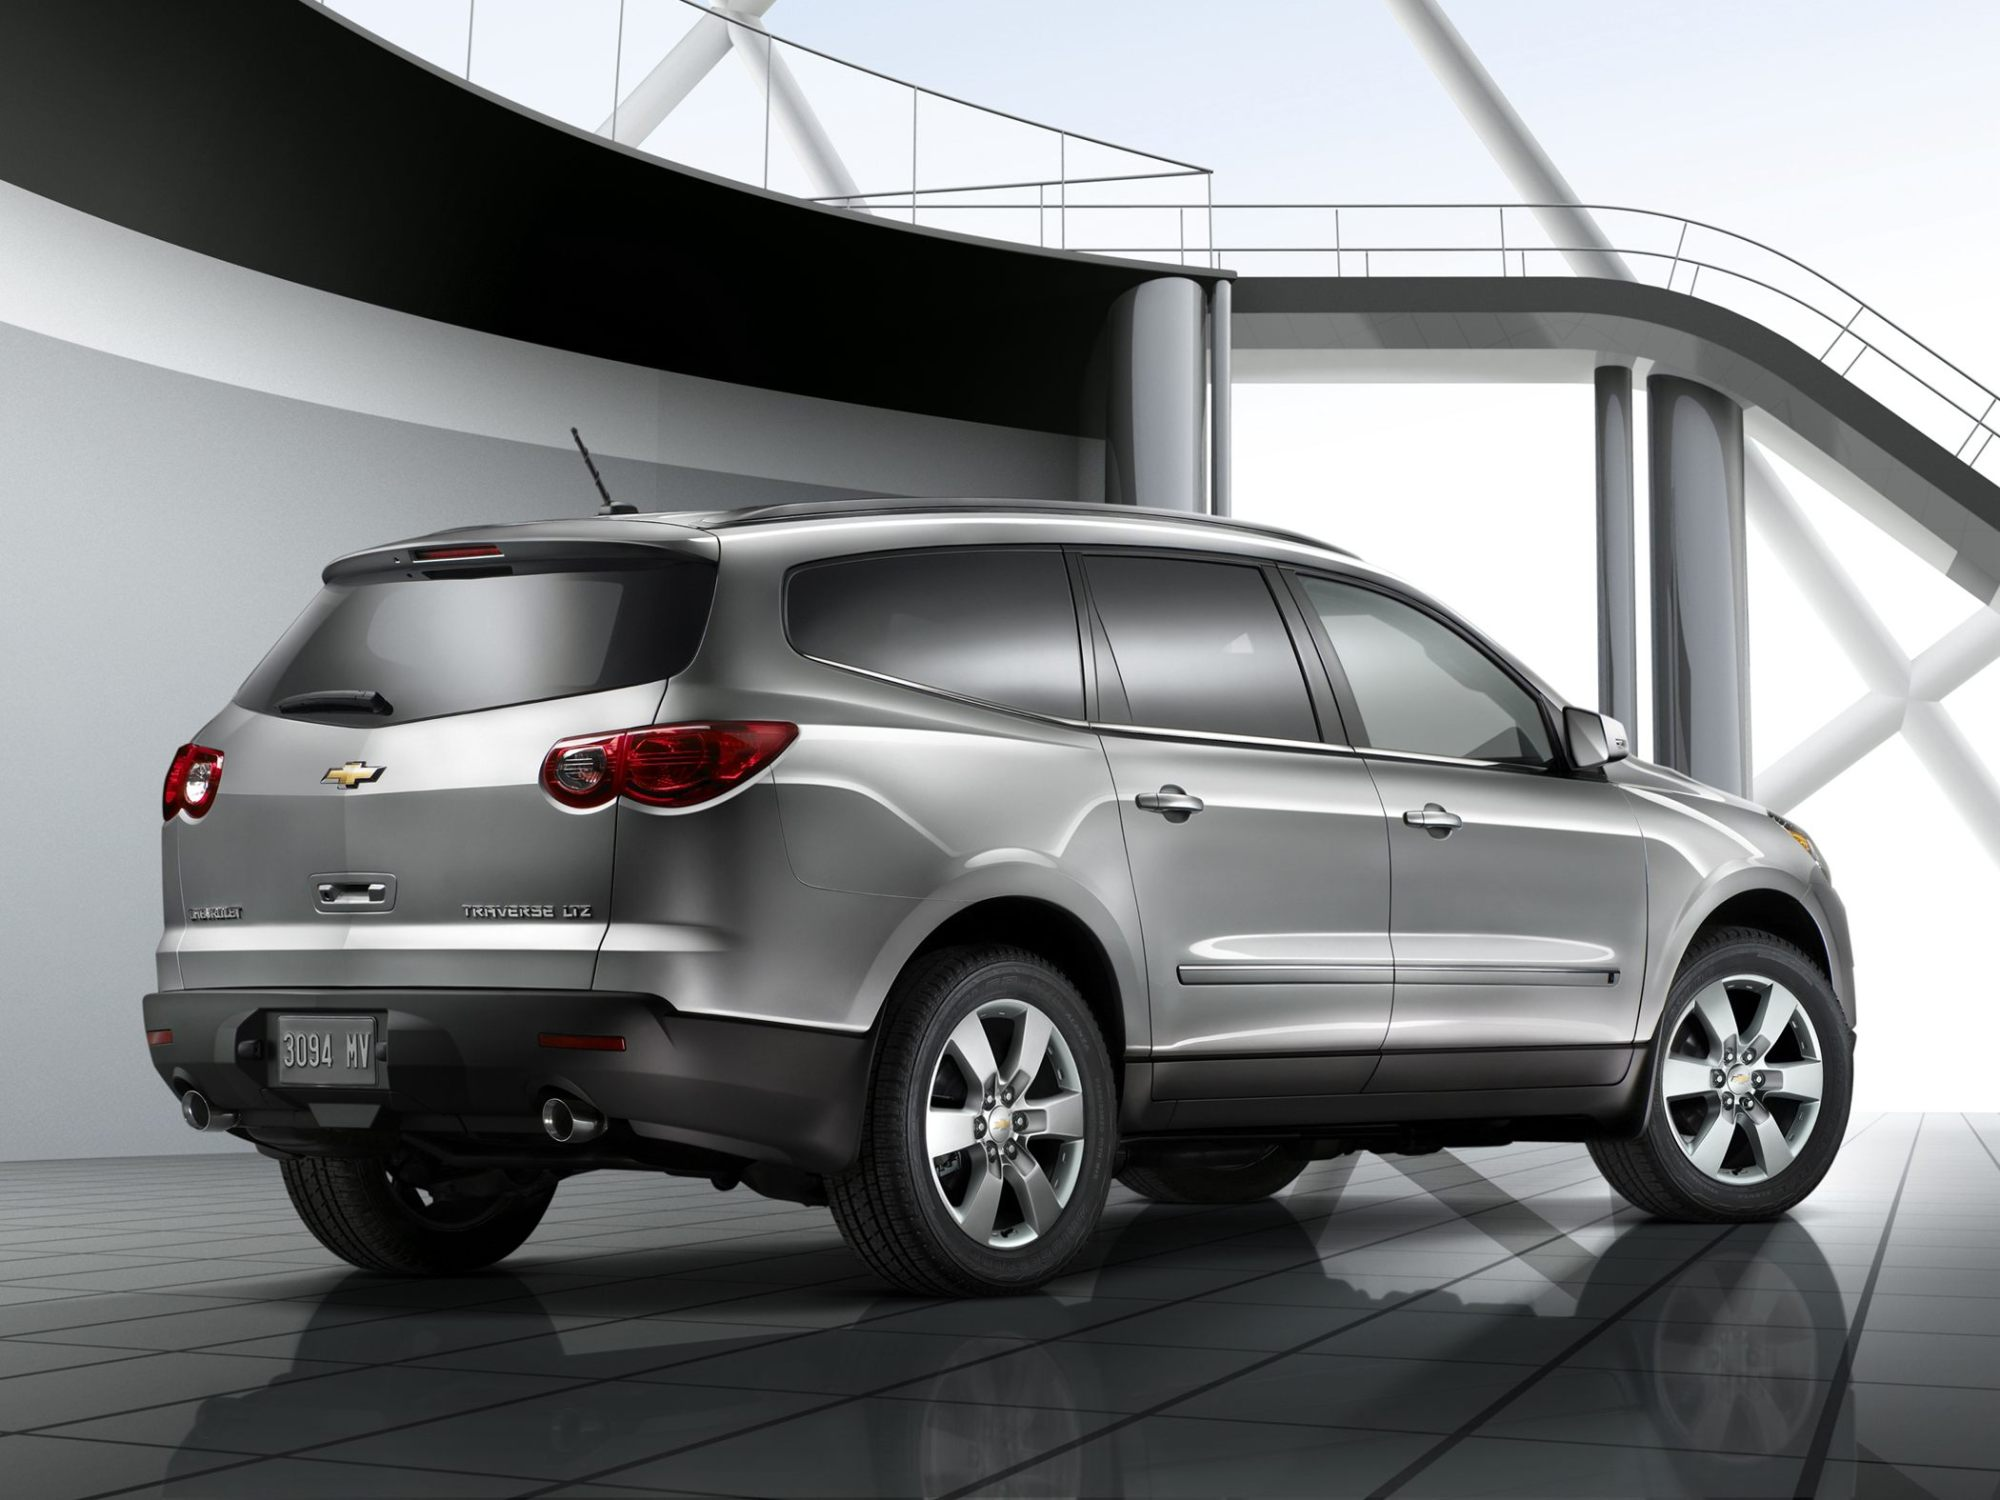 hight resolution of 2011 silver used chevy traverse